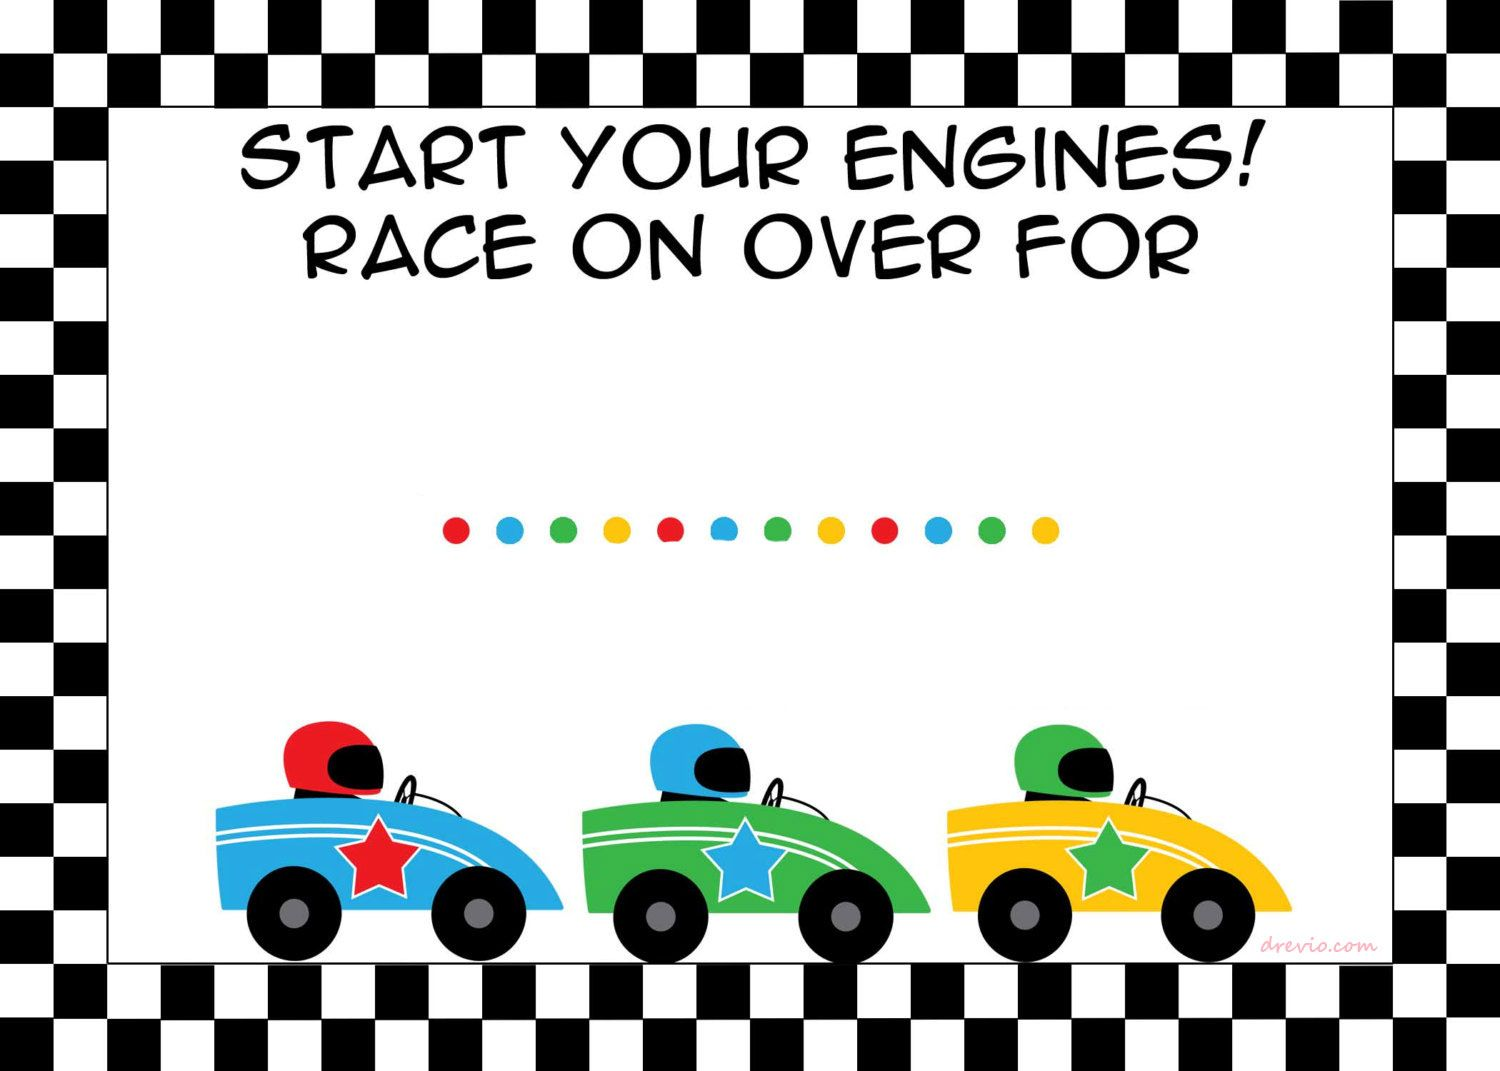 Free Printable Race Car Birthday Party Invitations Updated Car Birthday Party Invitations Race Car Birthday Race Car Birthday Party